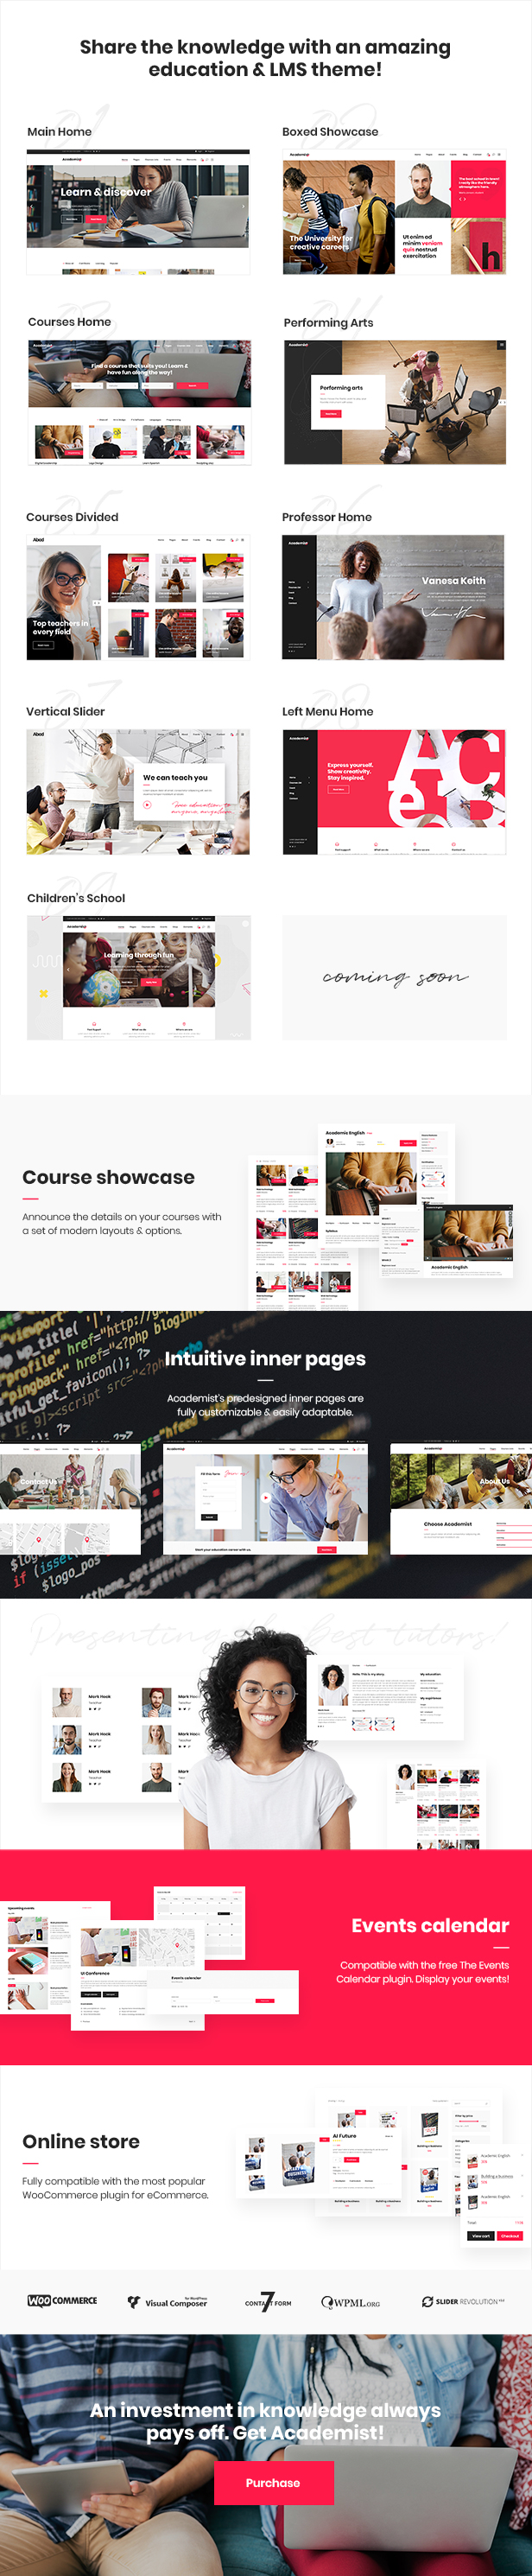 Academist - Modern Education and Learning Management System Theme - 1